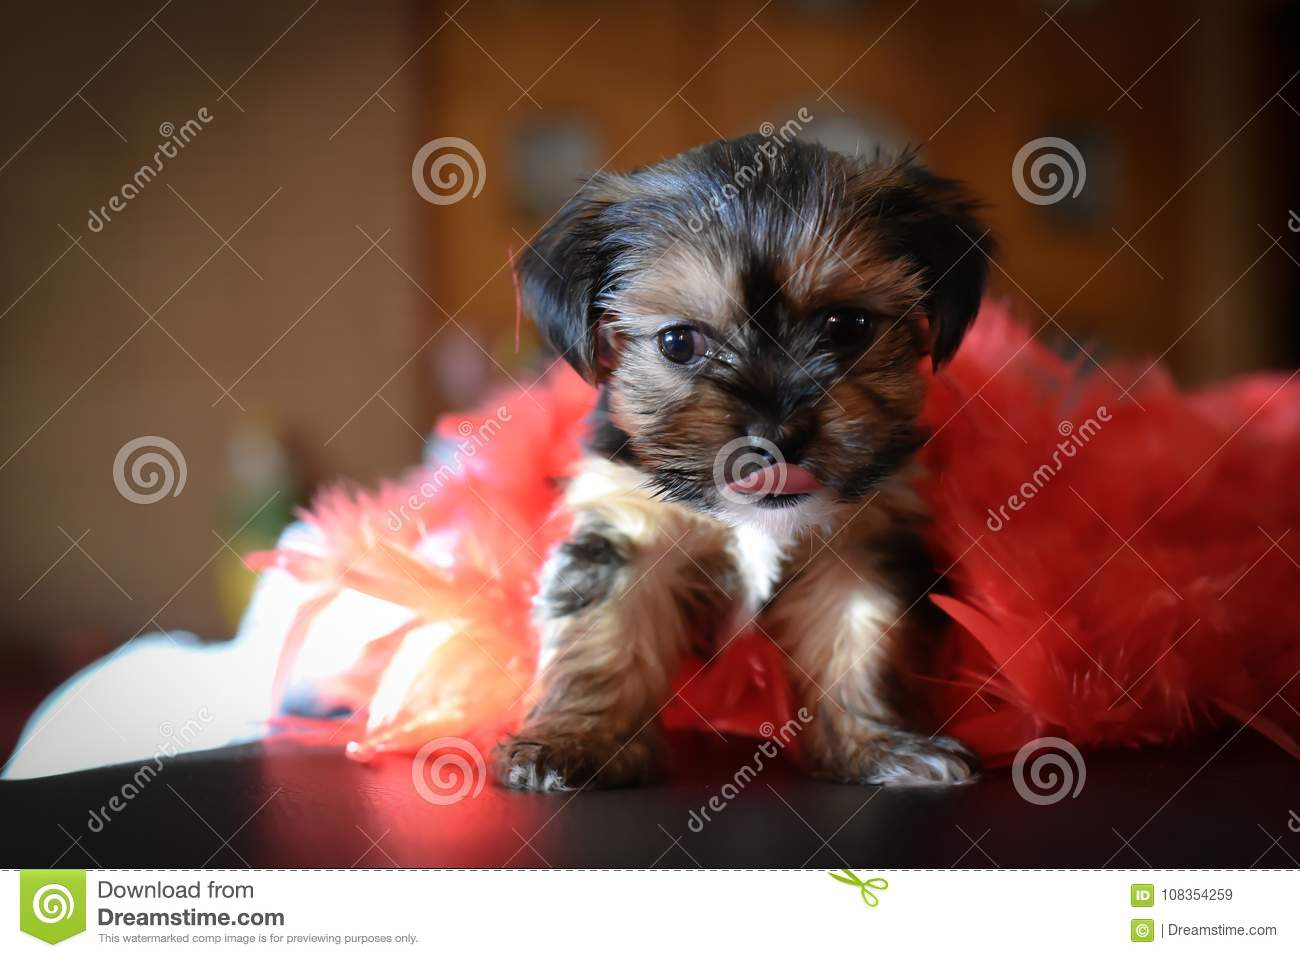 Cute Yorkie Shih Tzu Puppy With Red Boa Stock Image Image Of Tongue Great 108354259